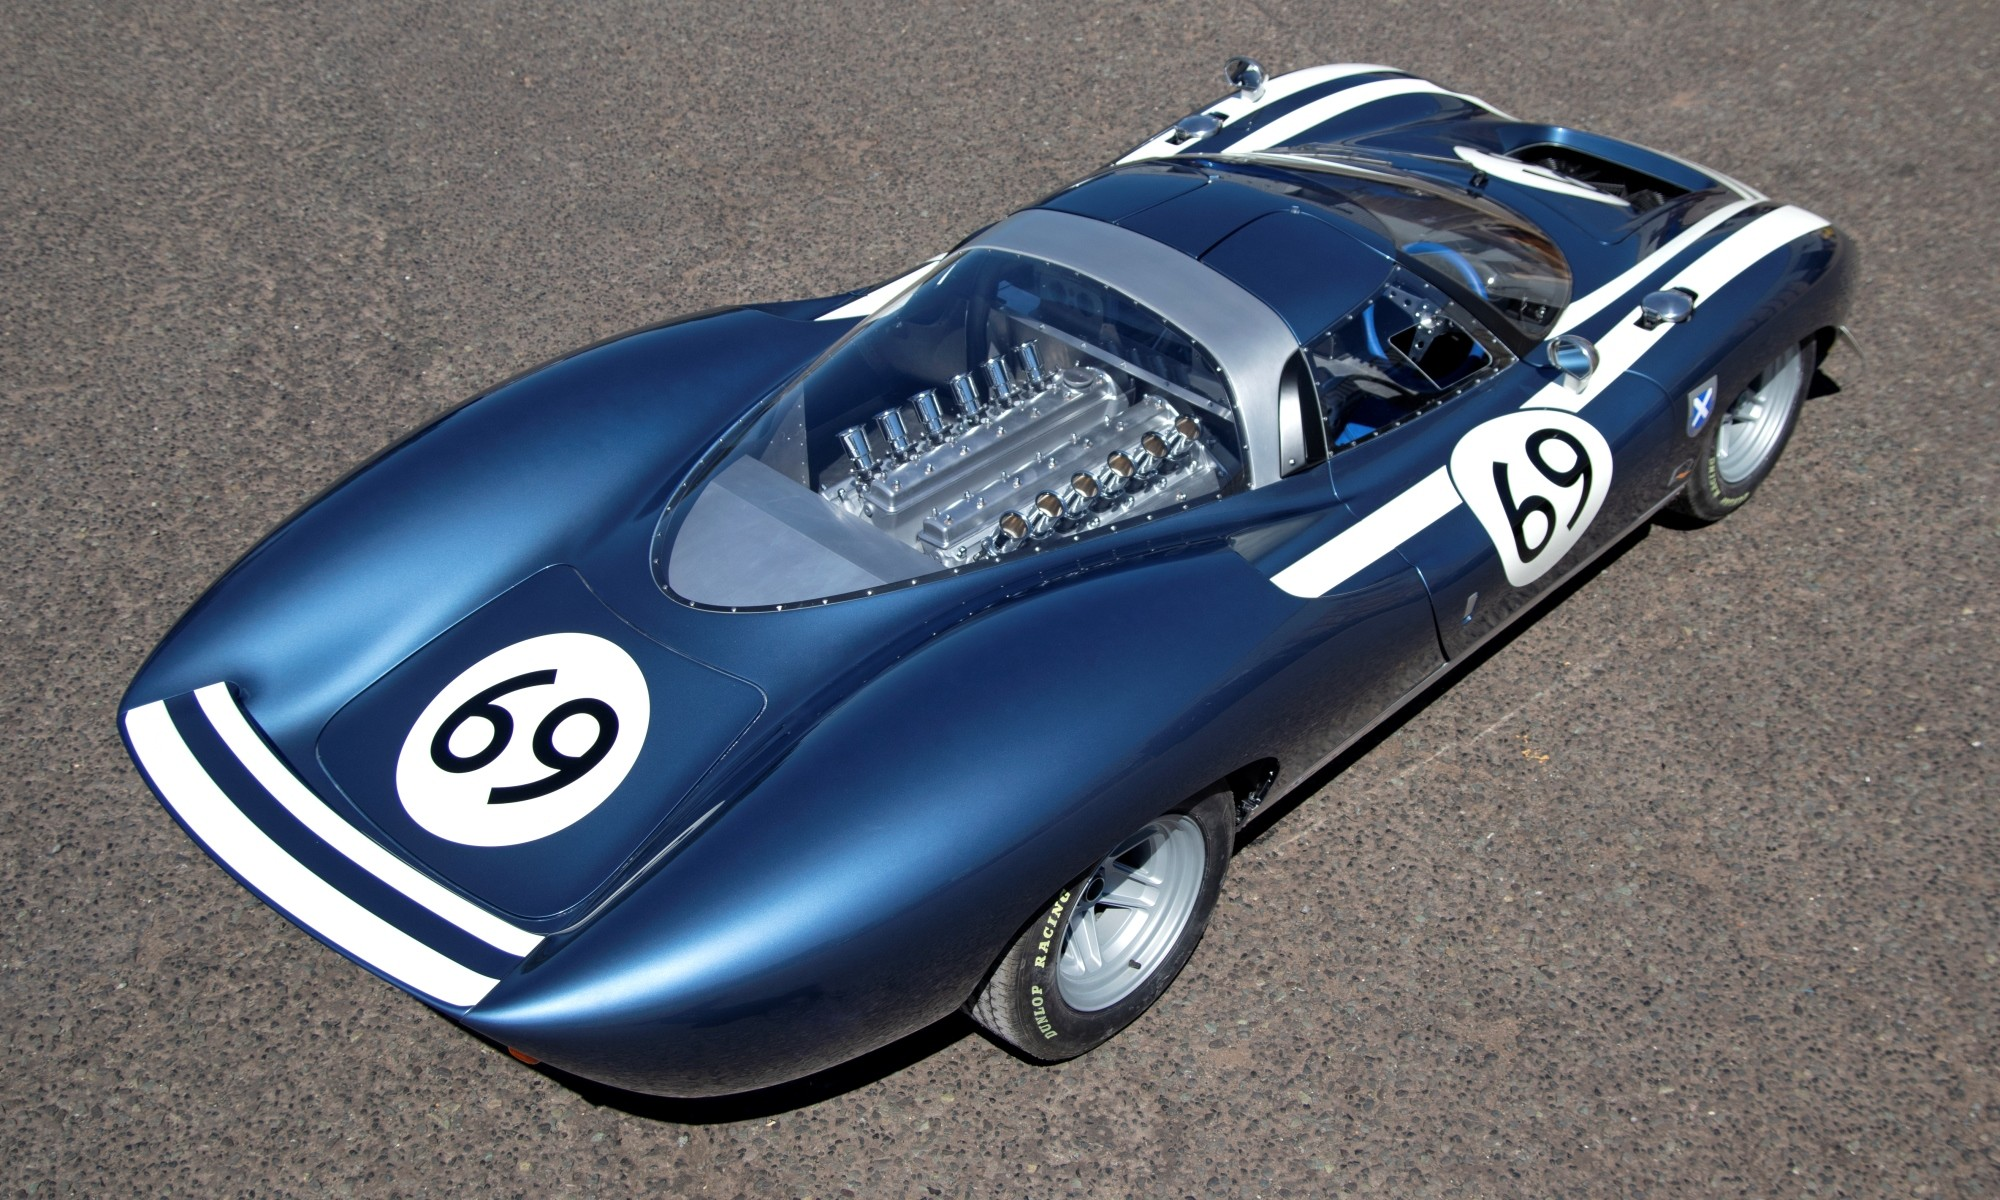 Ecurie Ecosse LM69 above rear